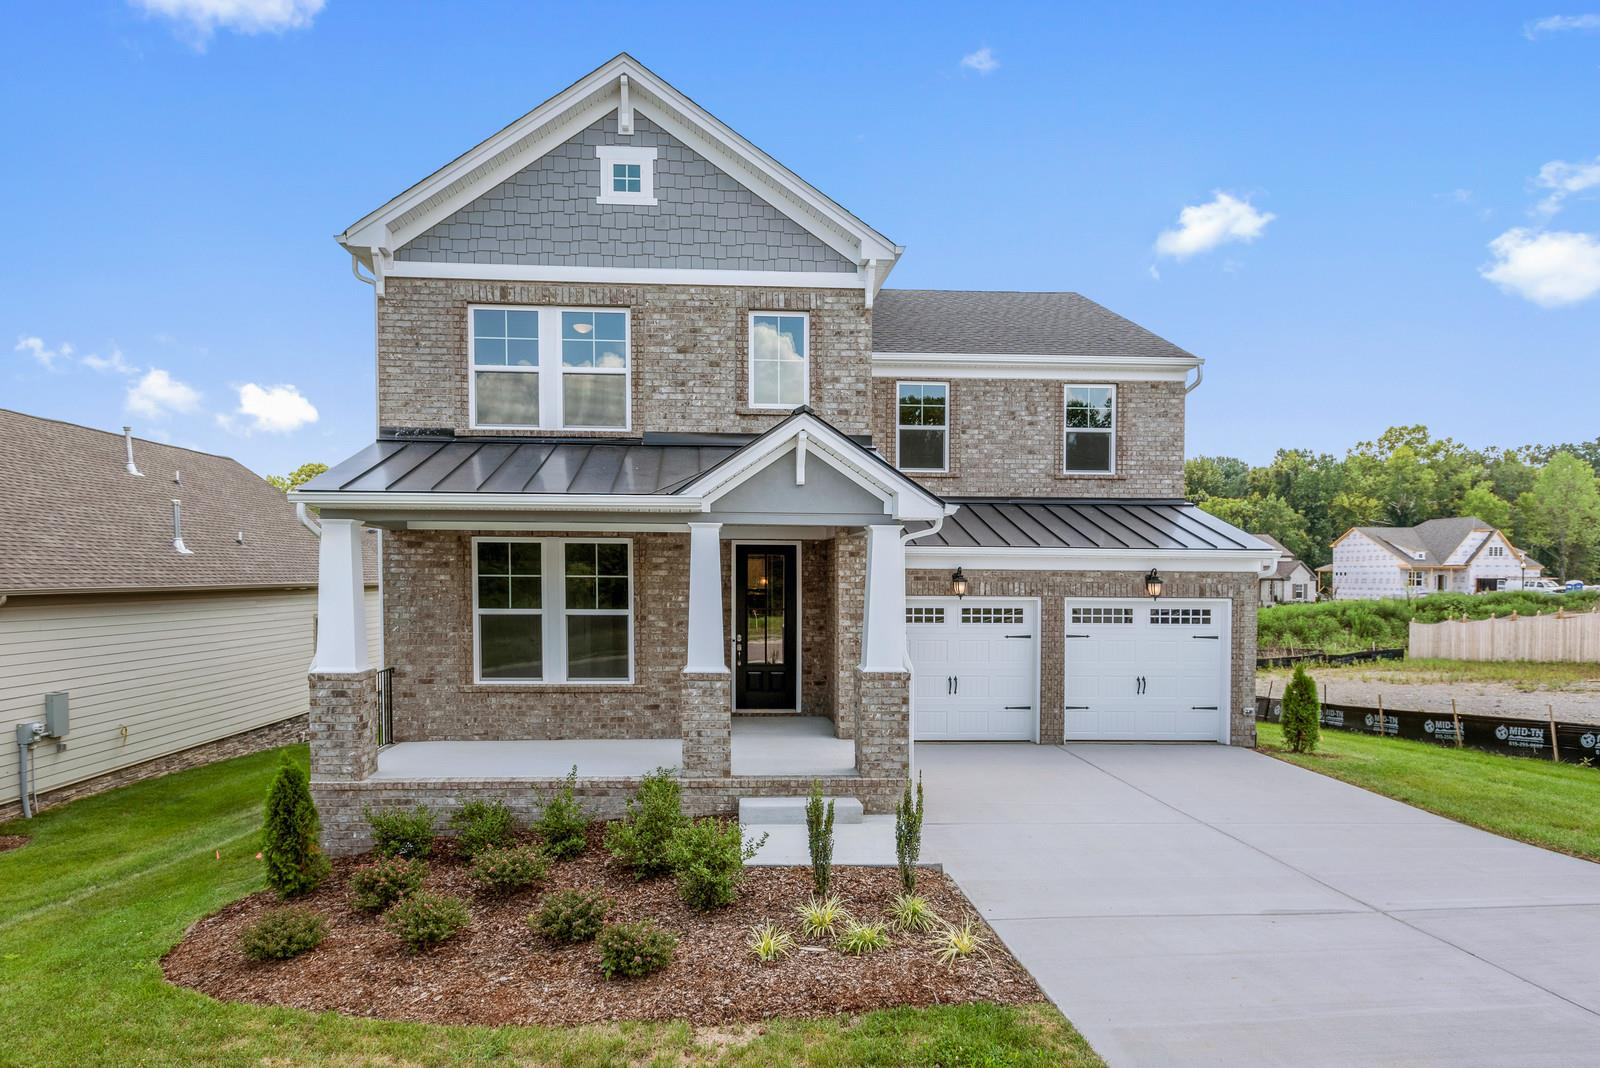 2009 Hedgelawn Dr. Lot 128, Lebanon, TN 37087 - Lebanon, TN real estate listing